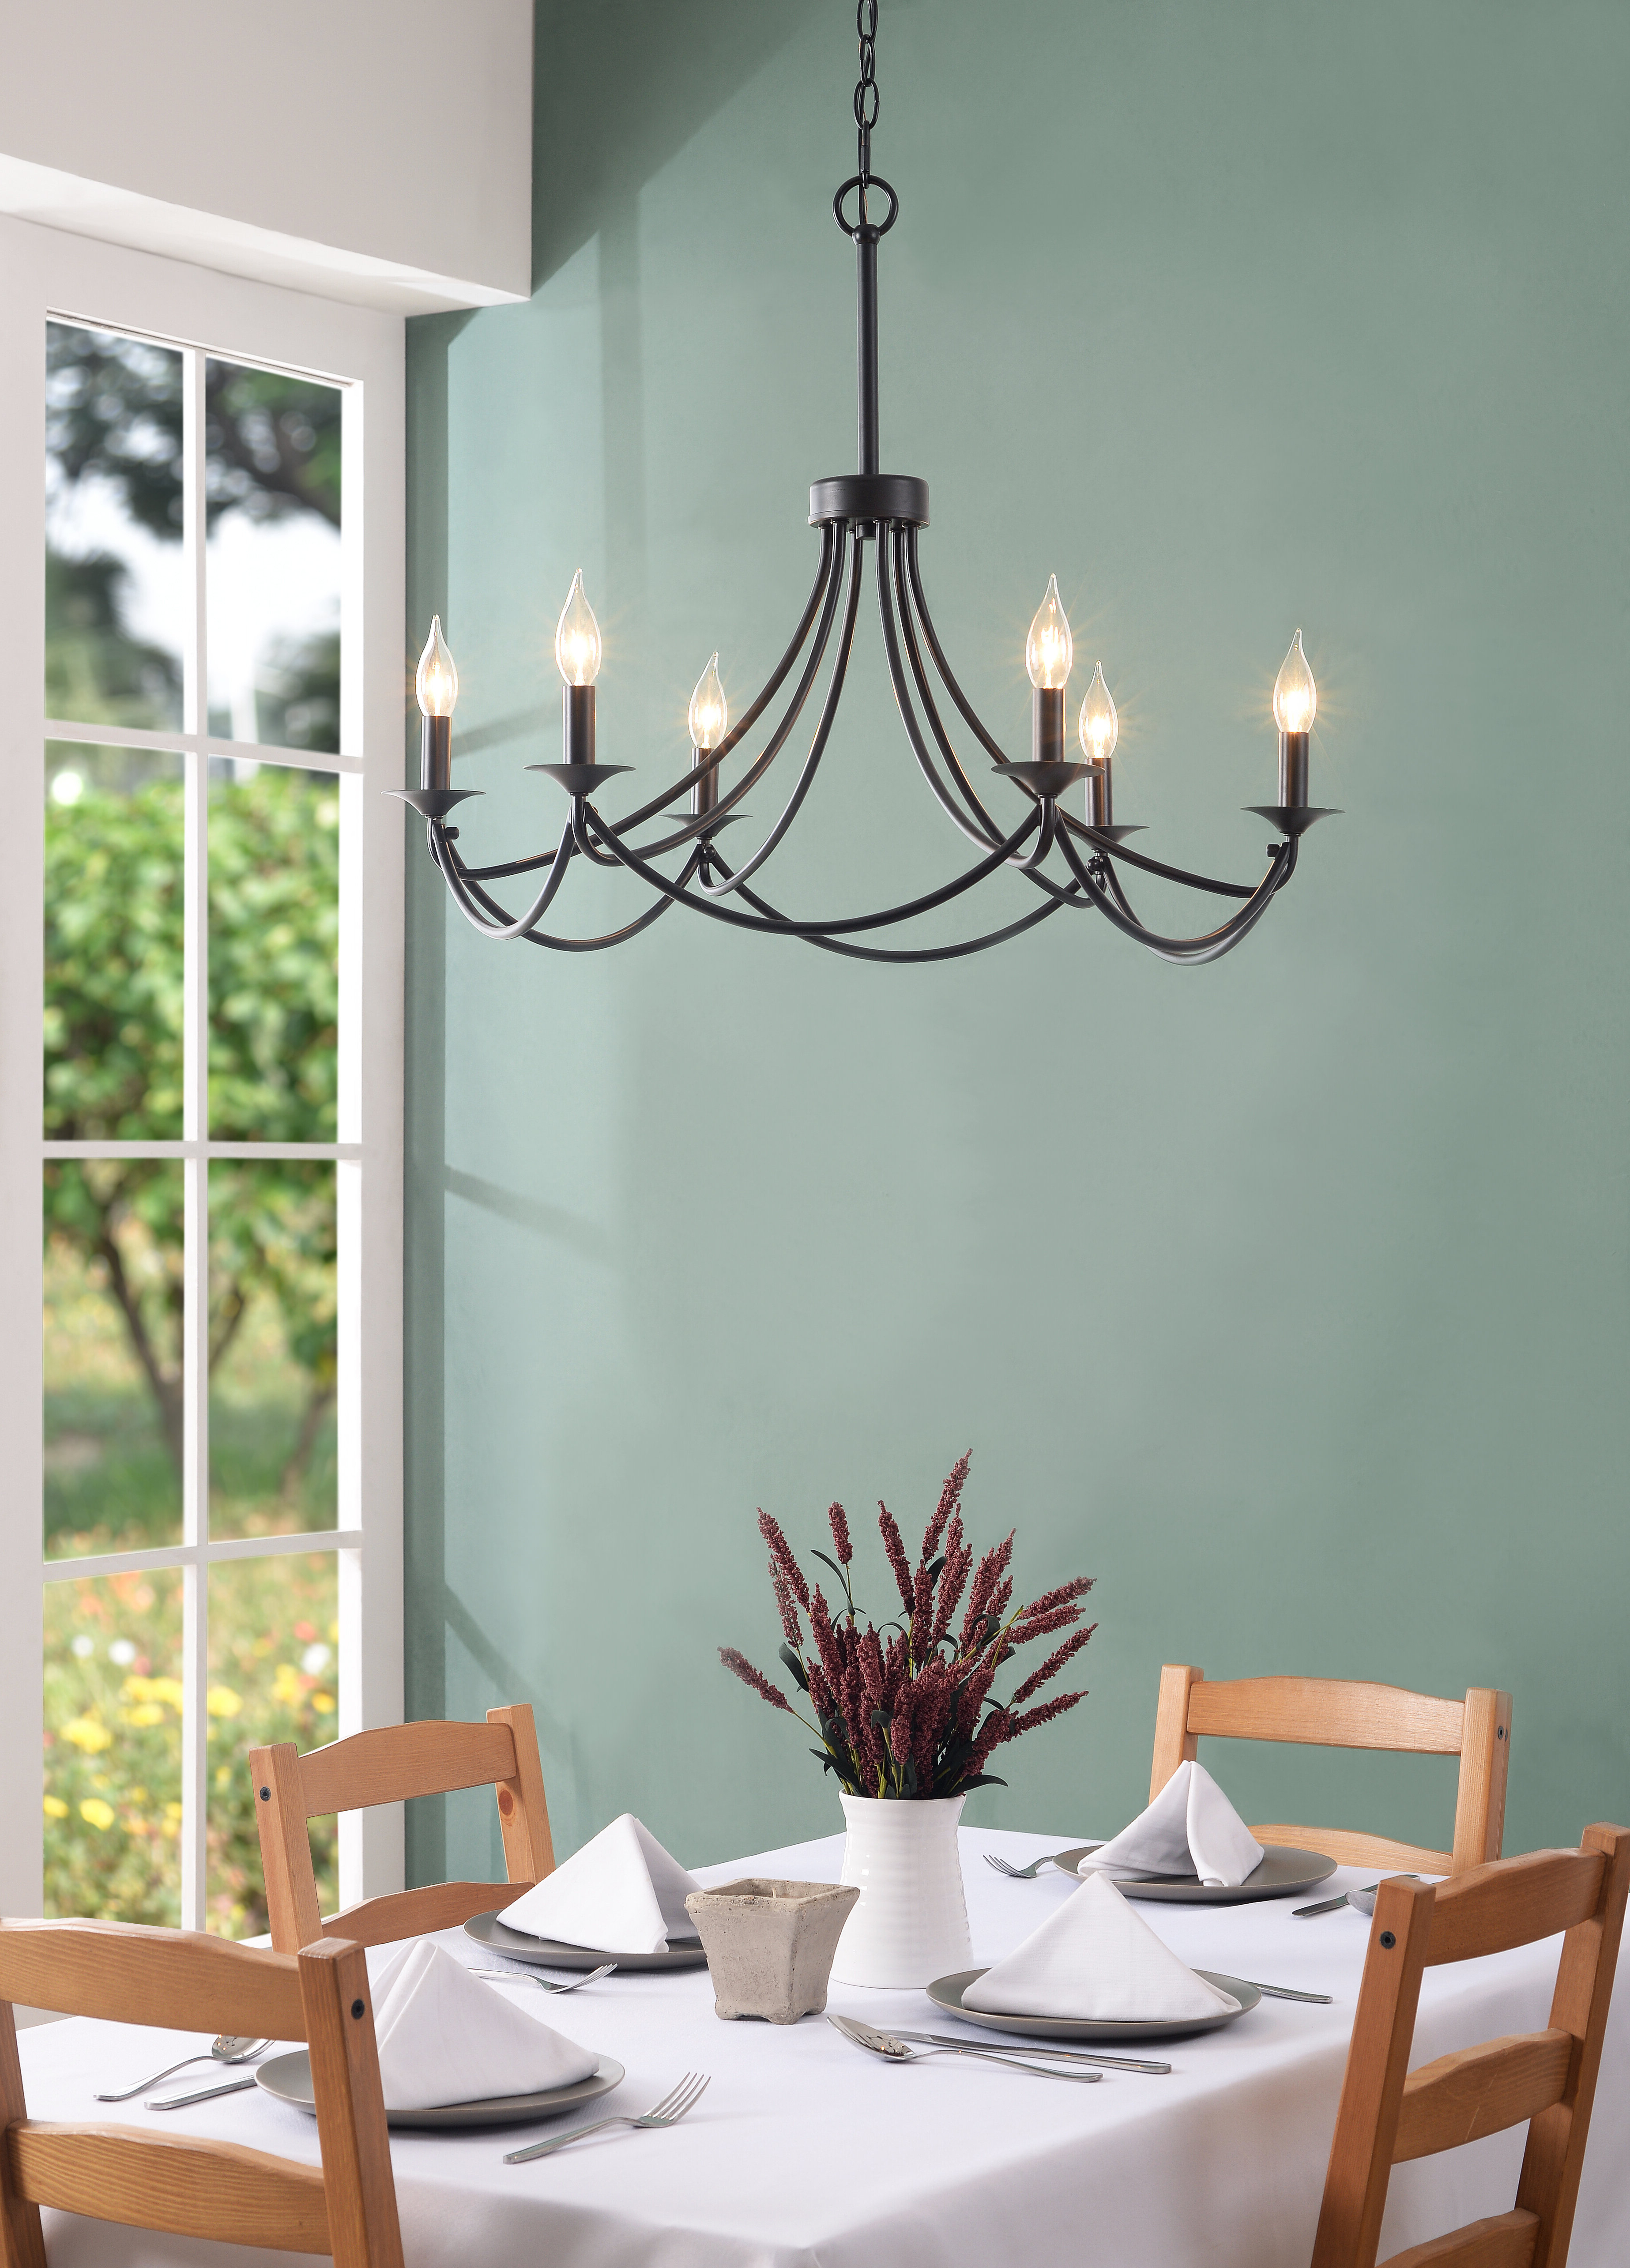 Hunley 6 Light Candle Style Chandelier Regarding Trendy Hamza 6 Light Candle Style Chandeliers (Gallery 19 of 20)